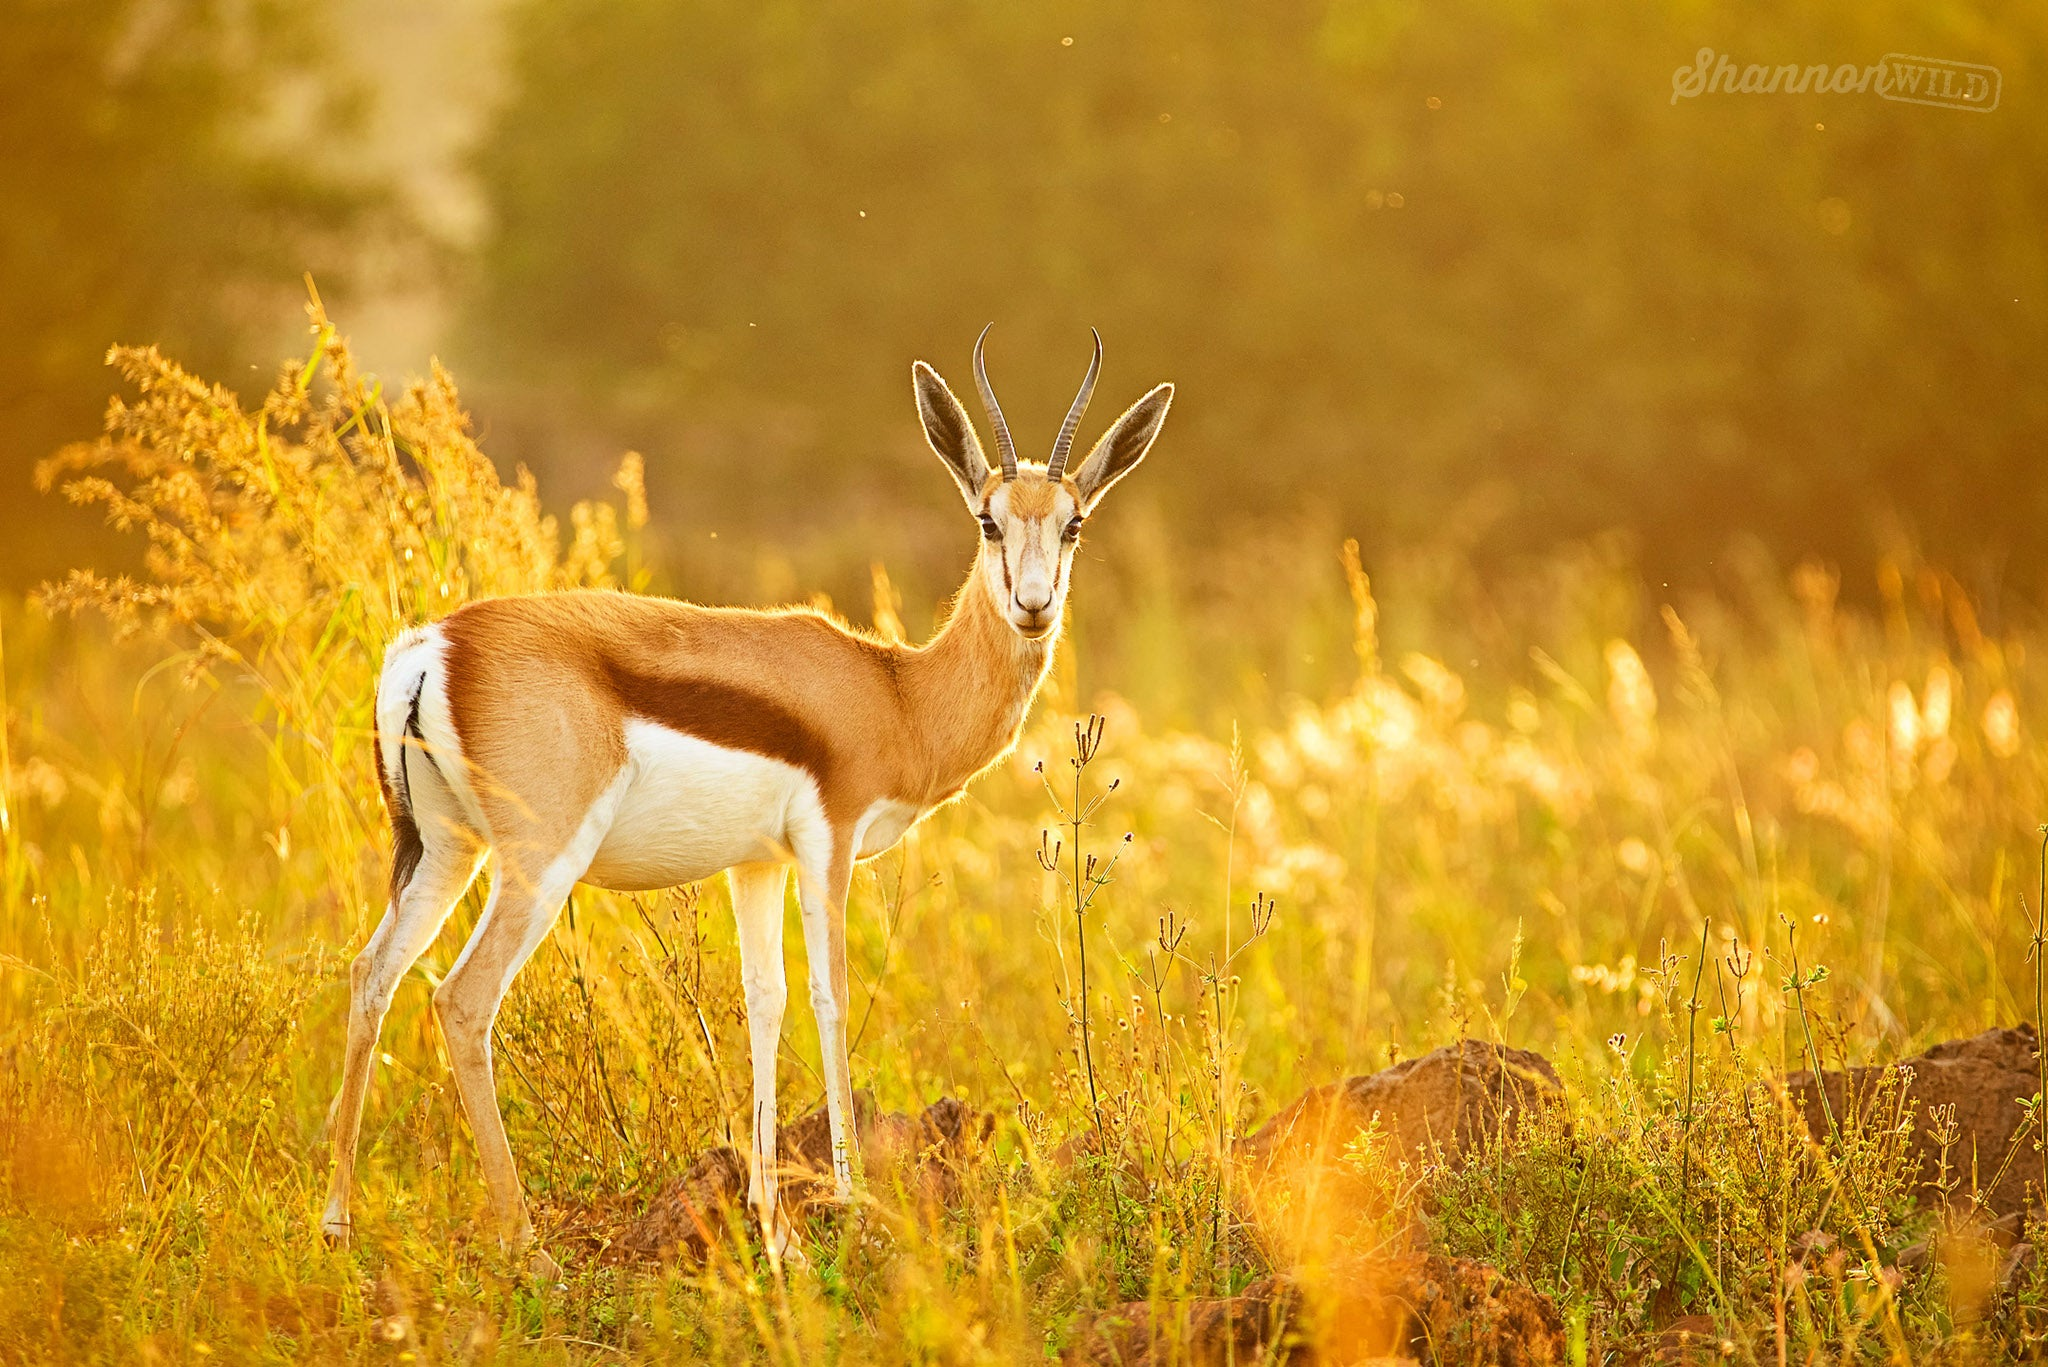 Golden_Impala_In_The_Sun_By_Shannon_Wild_ThinkTankPhoto